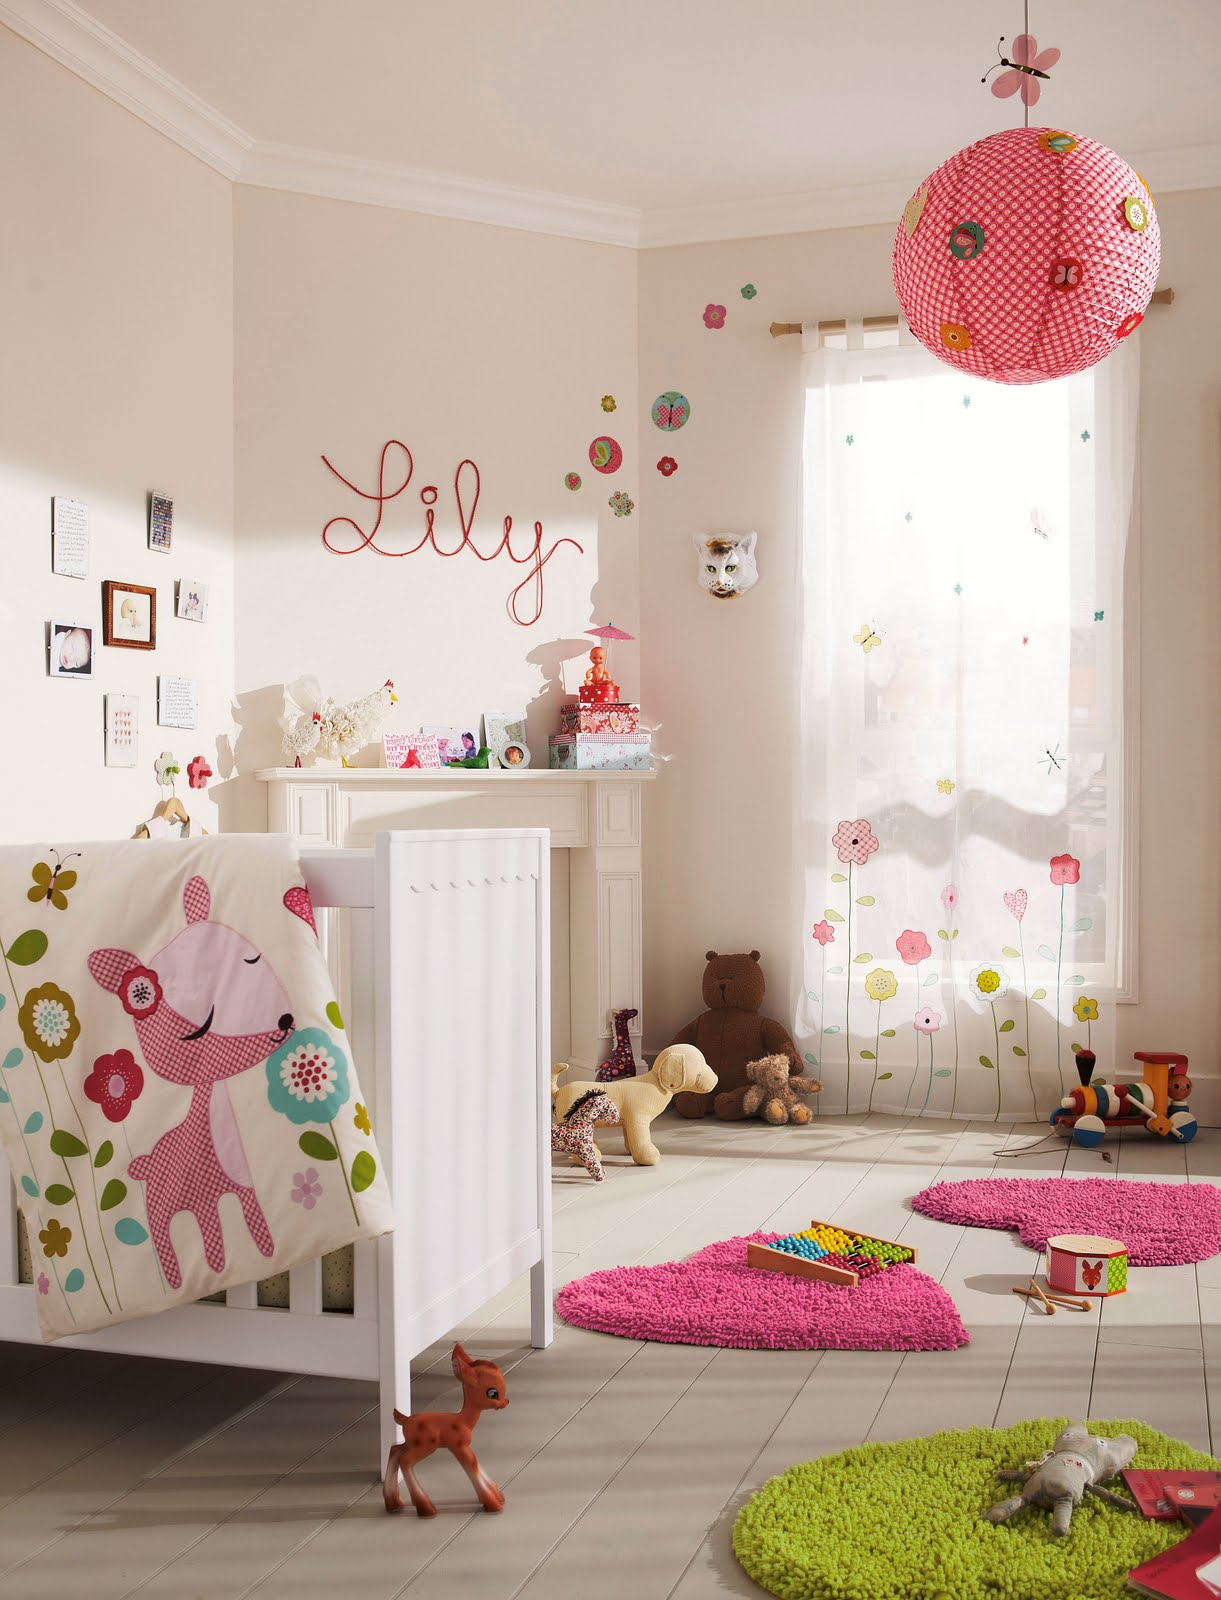 Pompons ch rie sheriff blog lifestyle mode famille for Photo decoration chambre bebe fille